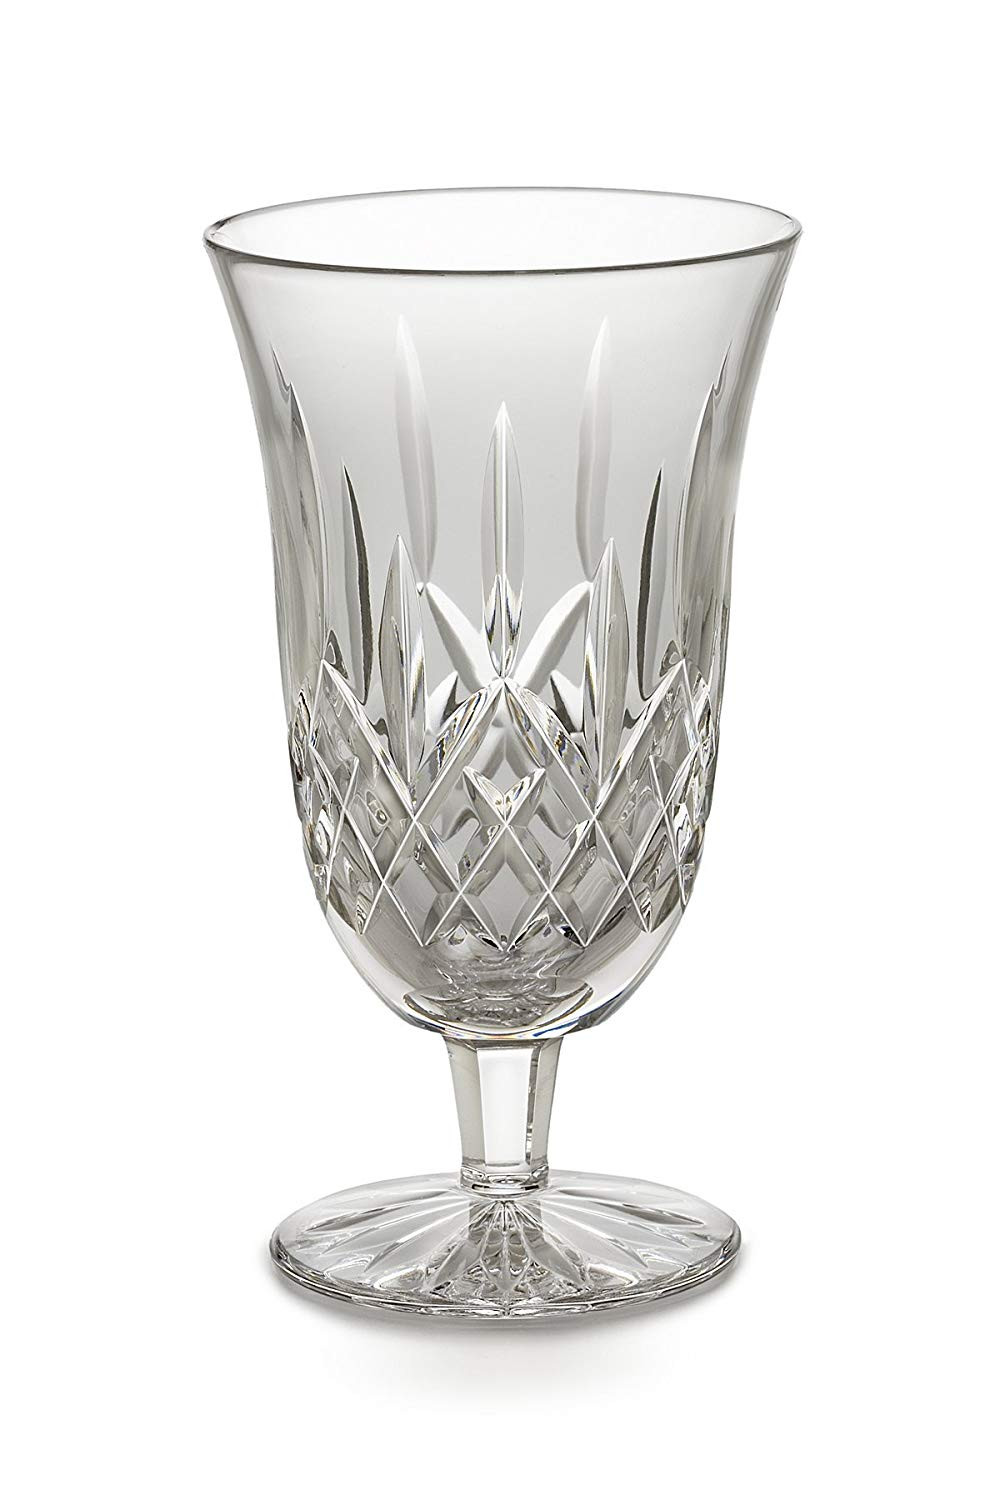 Retired Waterford Crystal Vase Patterns Of Amazon Com Waterford Lismore Iced Beverage 12 Ounce Waterford Inside Amazon Com Waterford Lismore Iced Beverage 12 Ounce Waterford Crystal Lismore Iced Tea Glasses